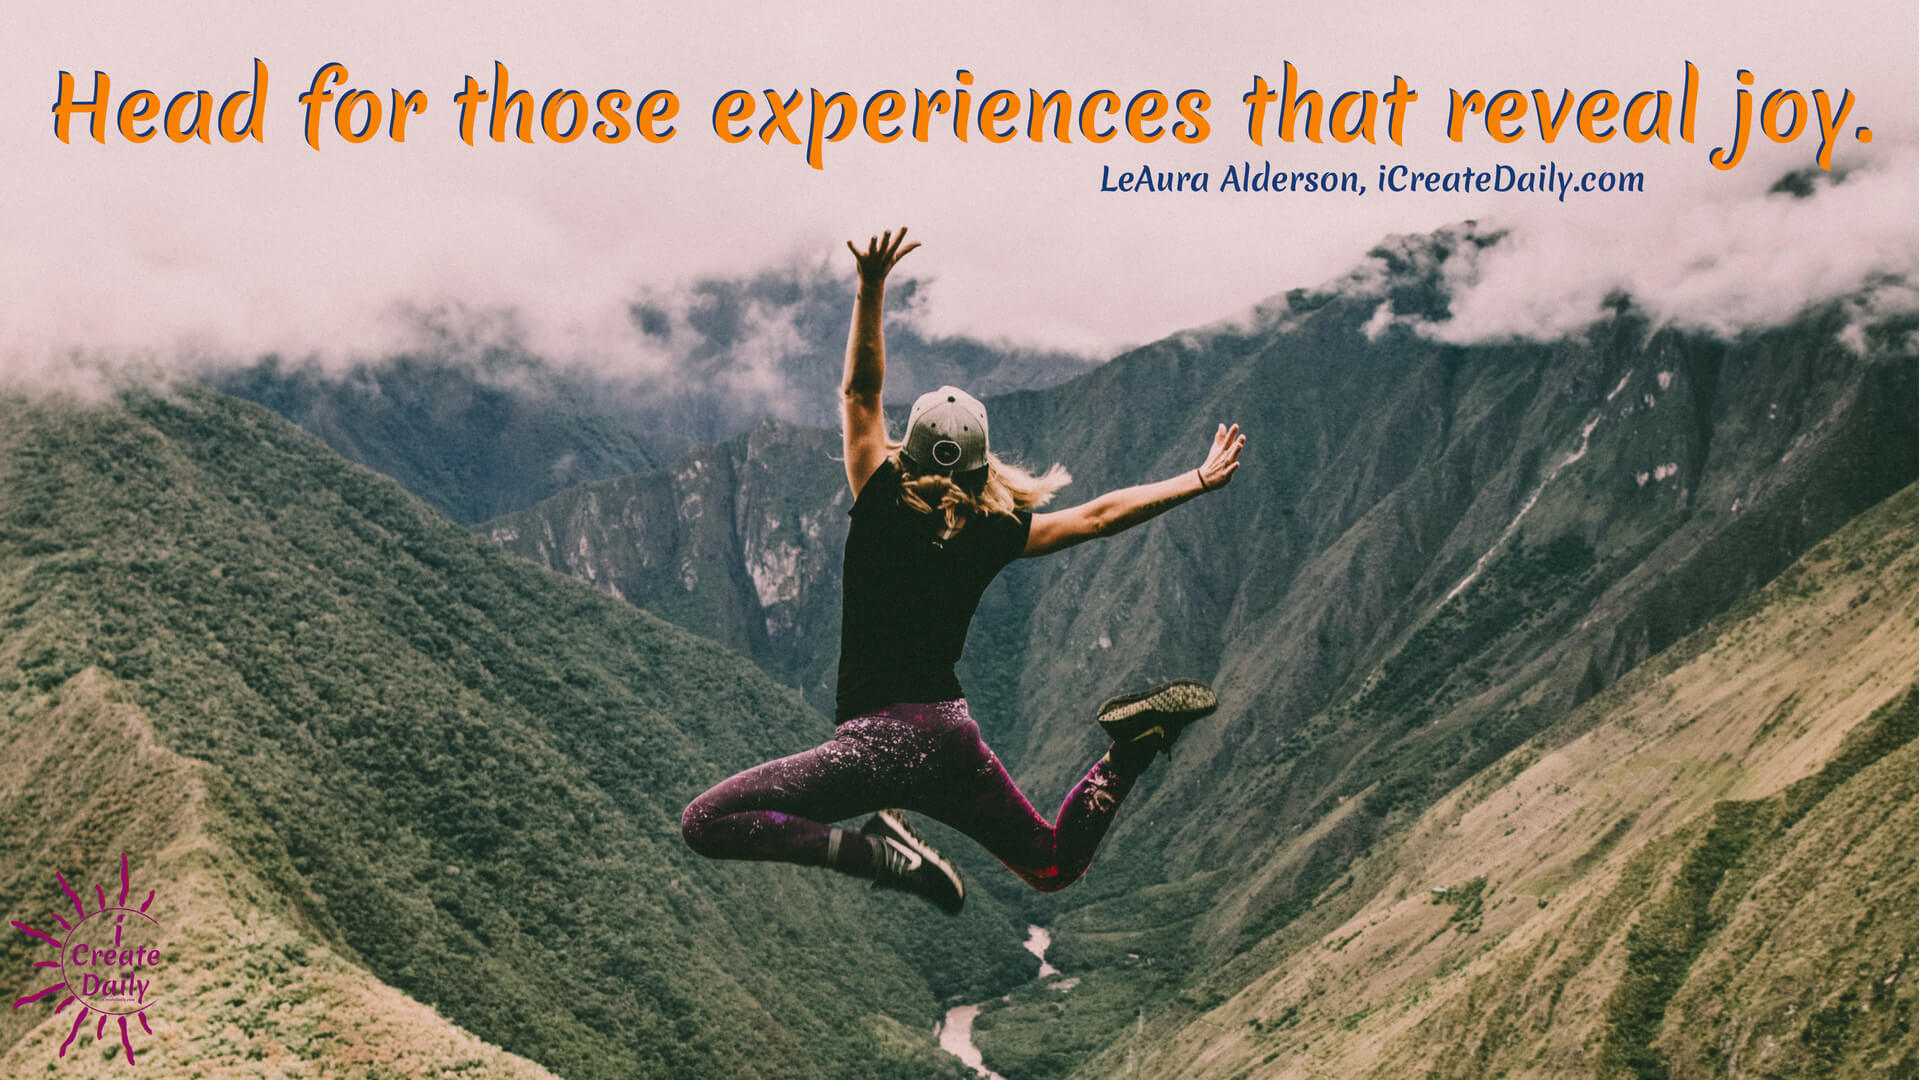 Keep asking questions and exploring. Enjoy the journey!  Head for those experiences that reveal joy. ~LeAura Alderson, iCreateDaily.com  #quotes #goals #life #JoyQuotes #iCreateDaily